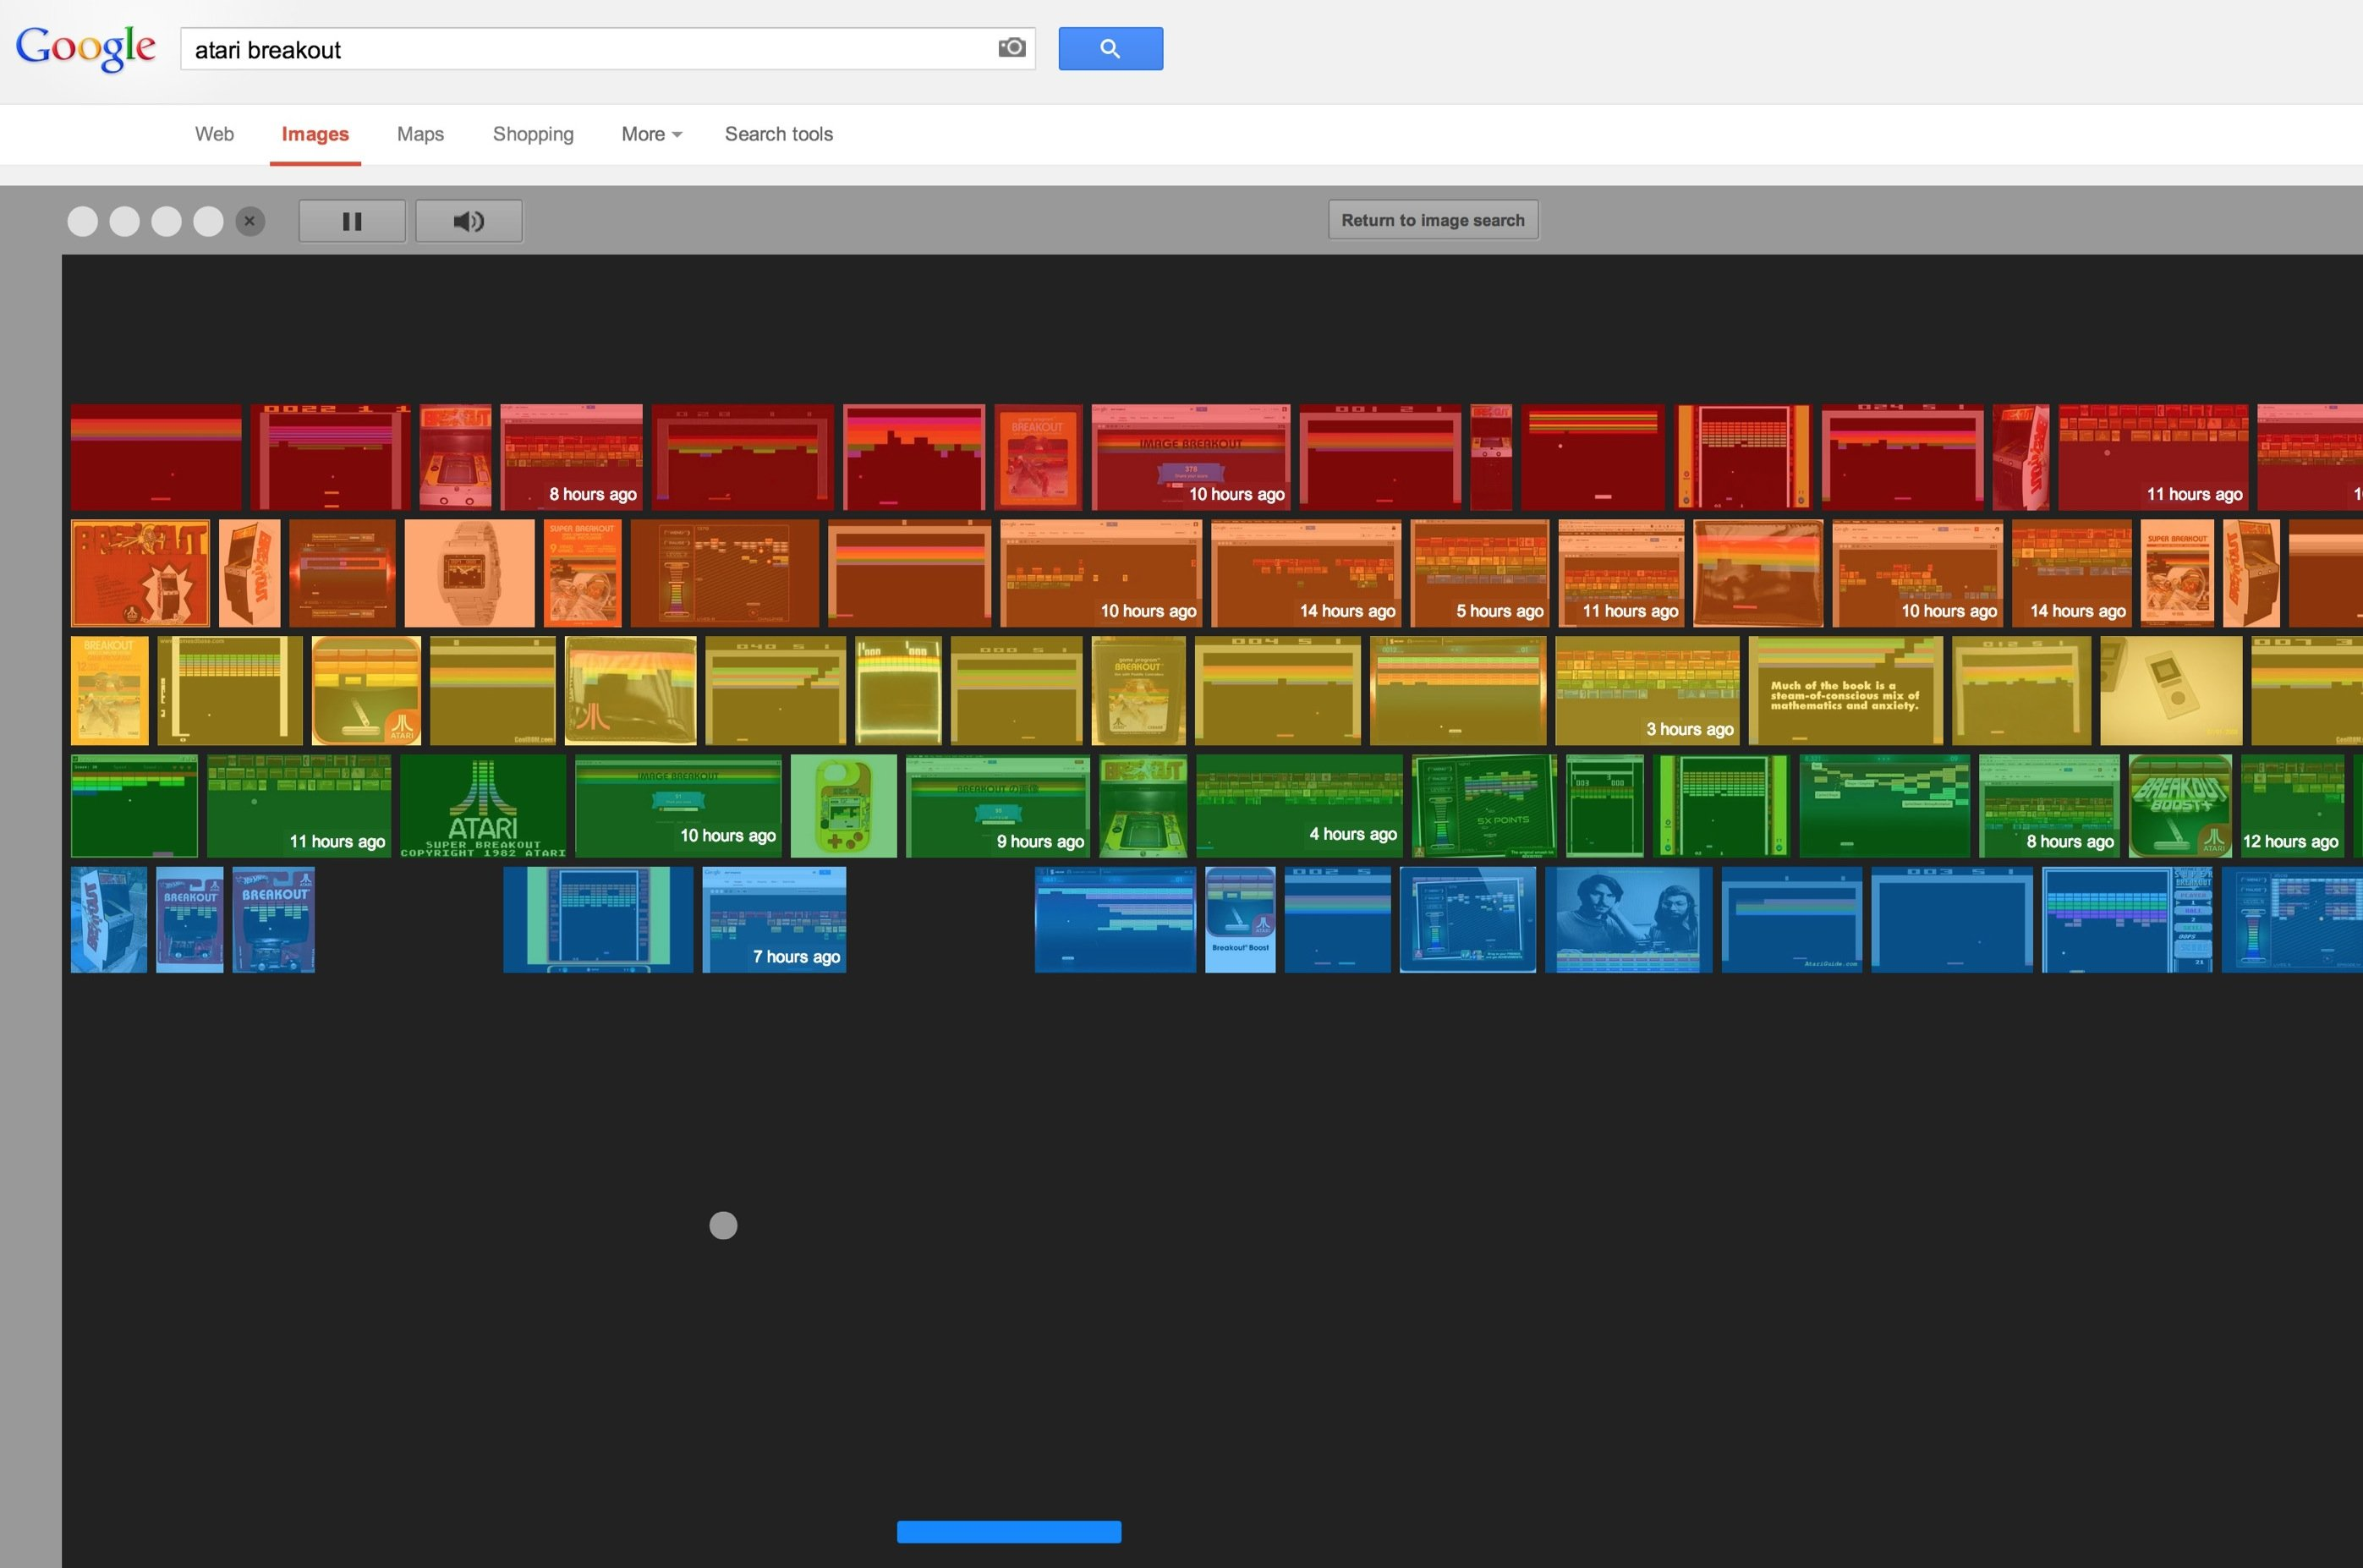 You can play Atari Breakout on Google Image Search right now, and